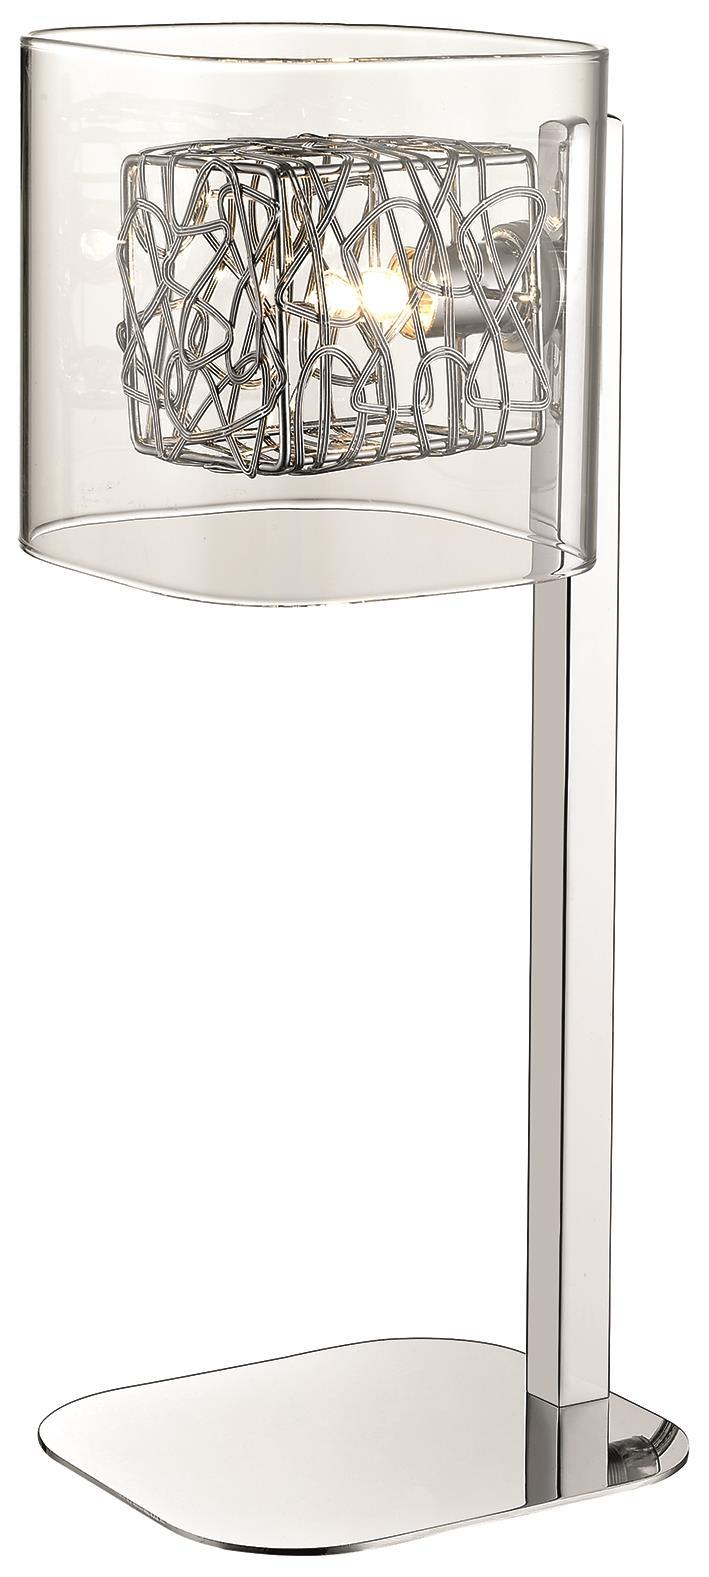 SND Lighting SND203 Paris Table Lamp Chrome - SND Electrical Ltd